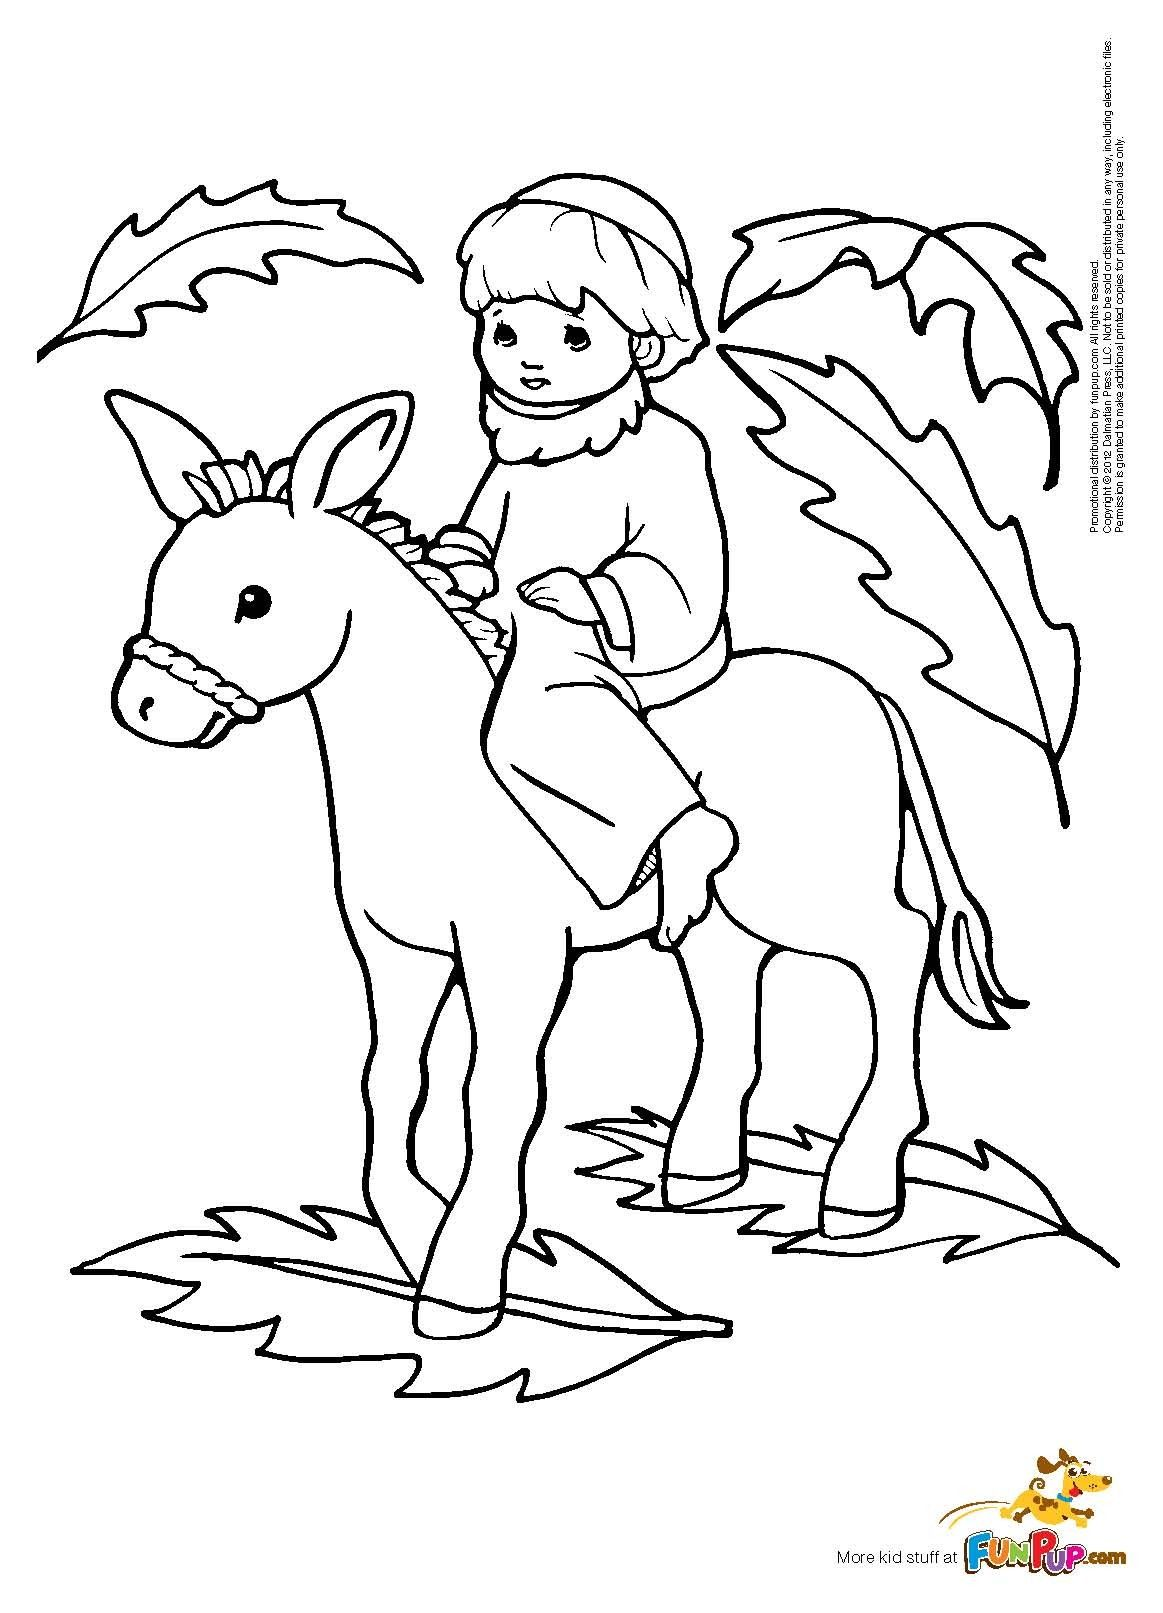 Palm Sunday Coloring Page Free Printable Coloring Pages